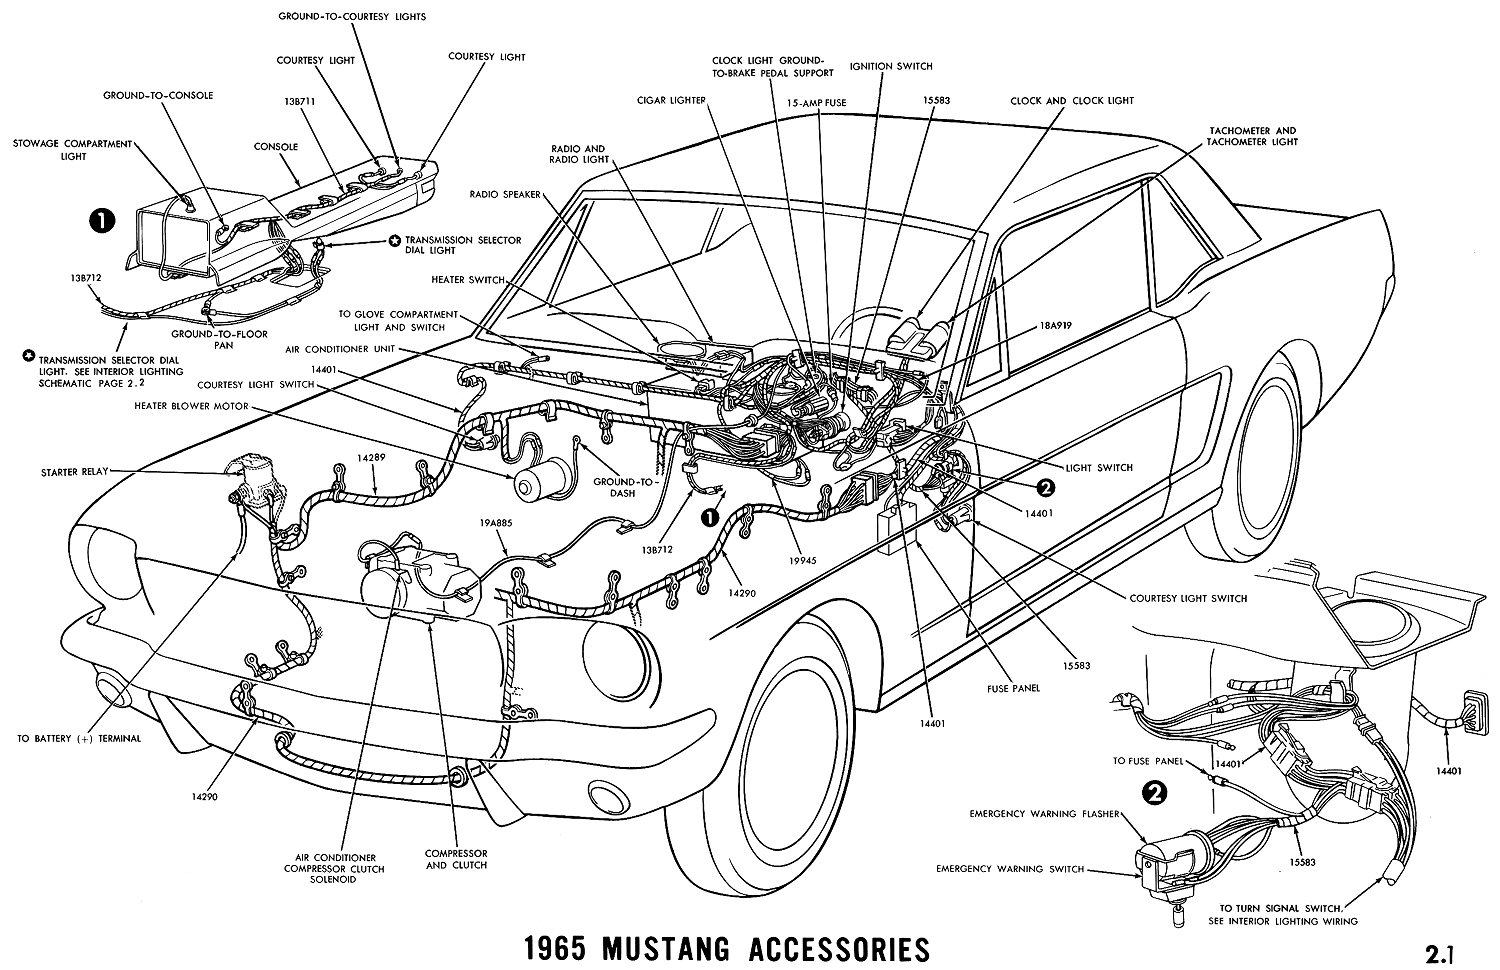 1965h 1965 mustang wiring diagrams average joe restoration 02 mustang fuse box location at readyjetset.co